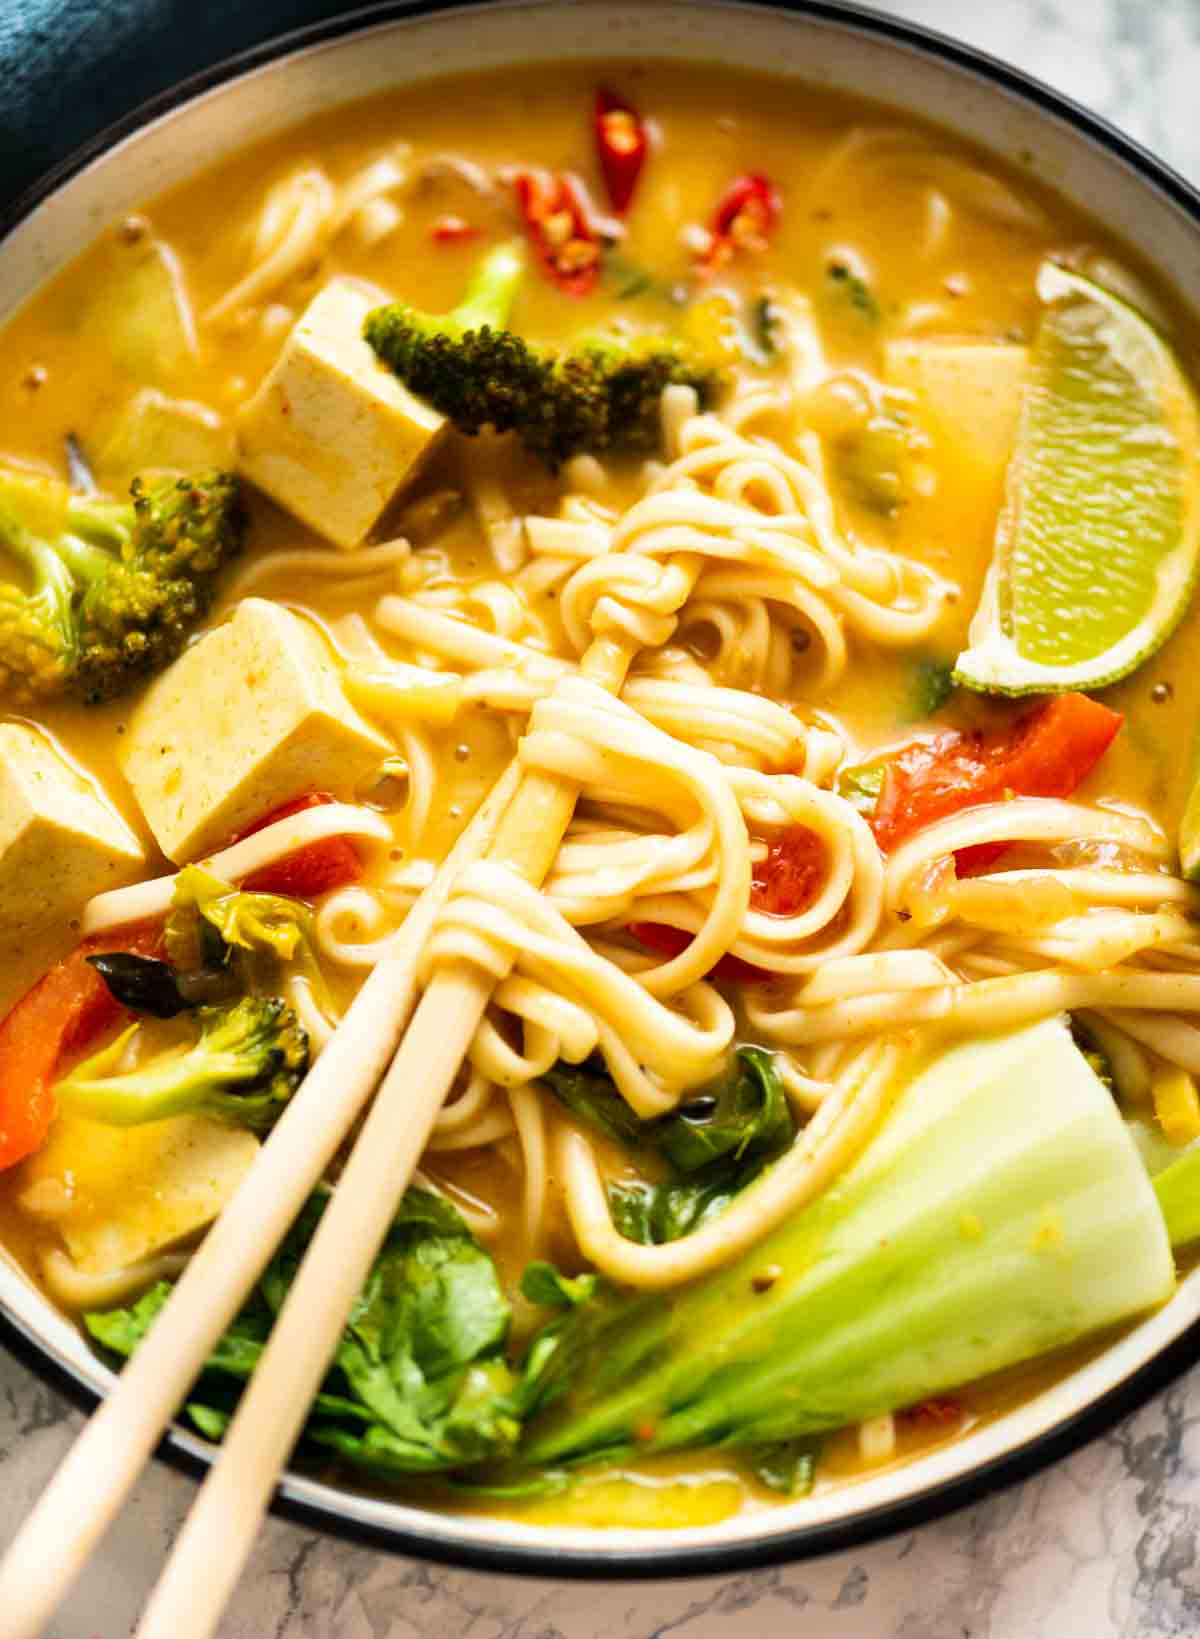 Close-up of a bowl of noodle soup with chopsticks pulling the noodles